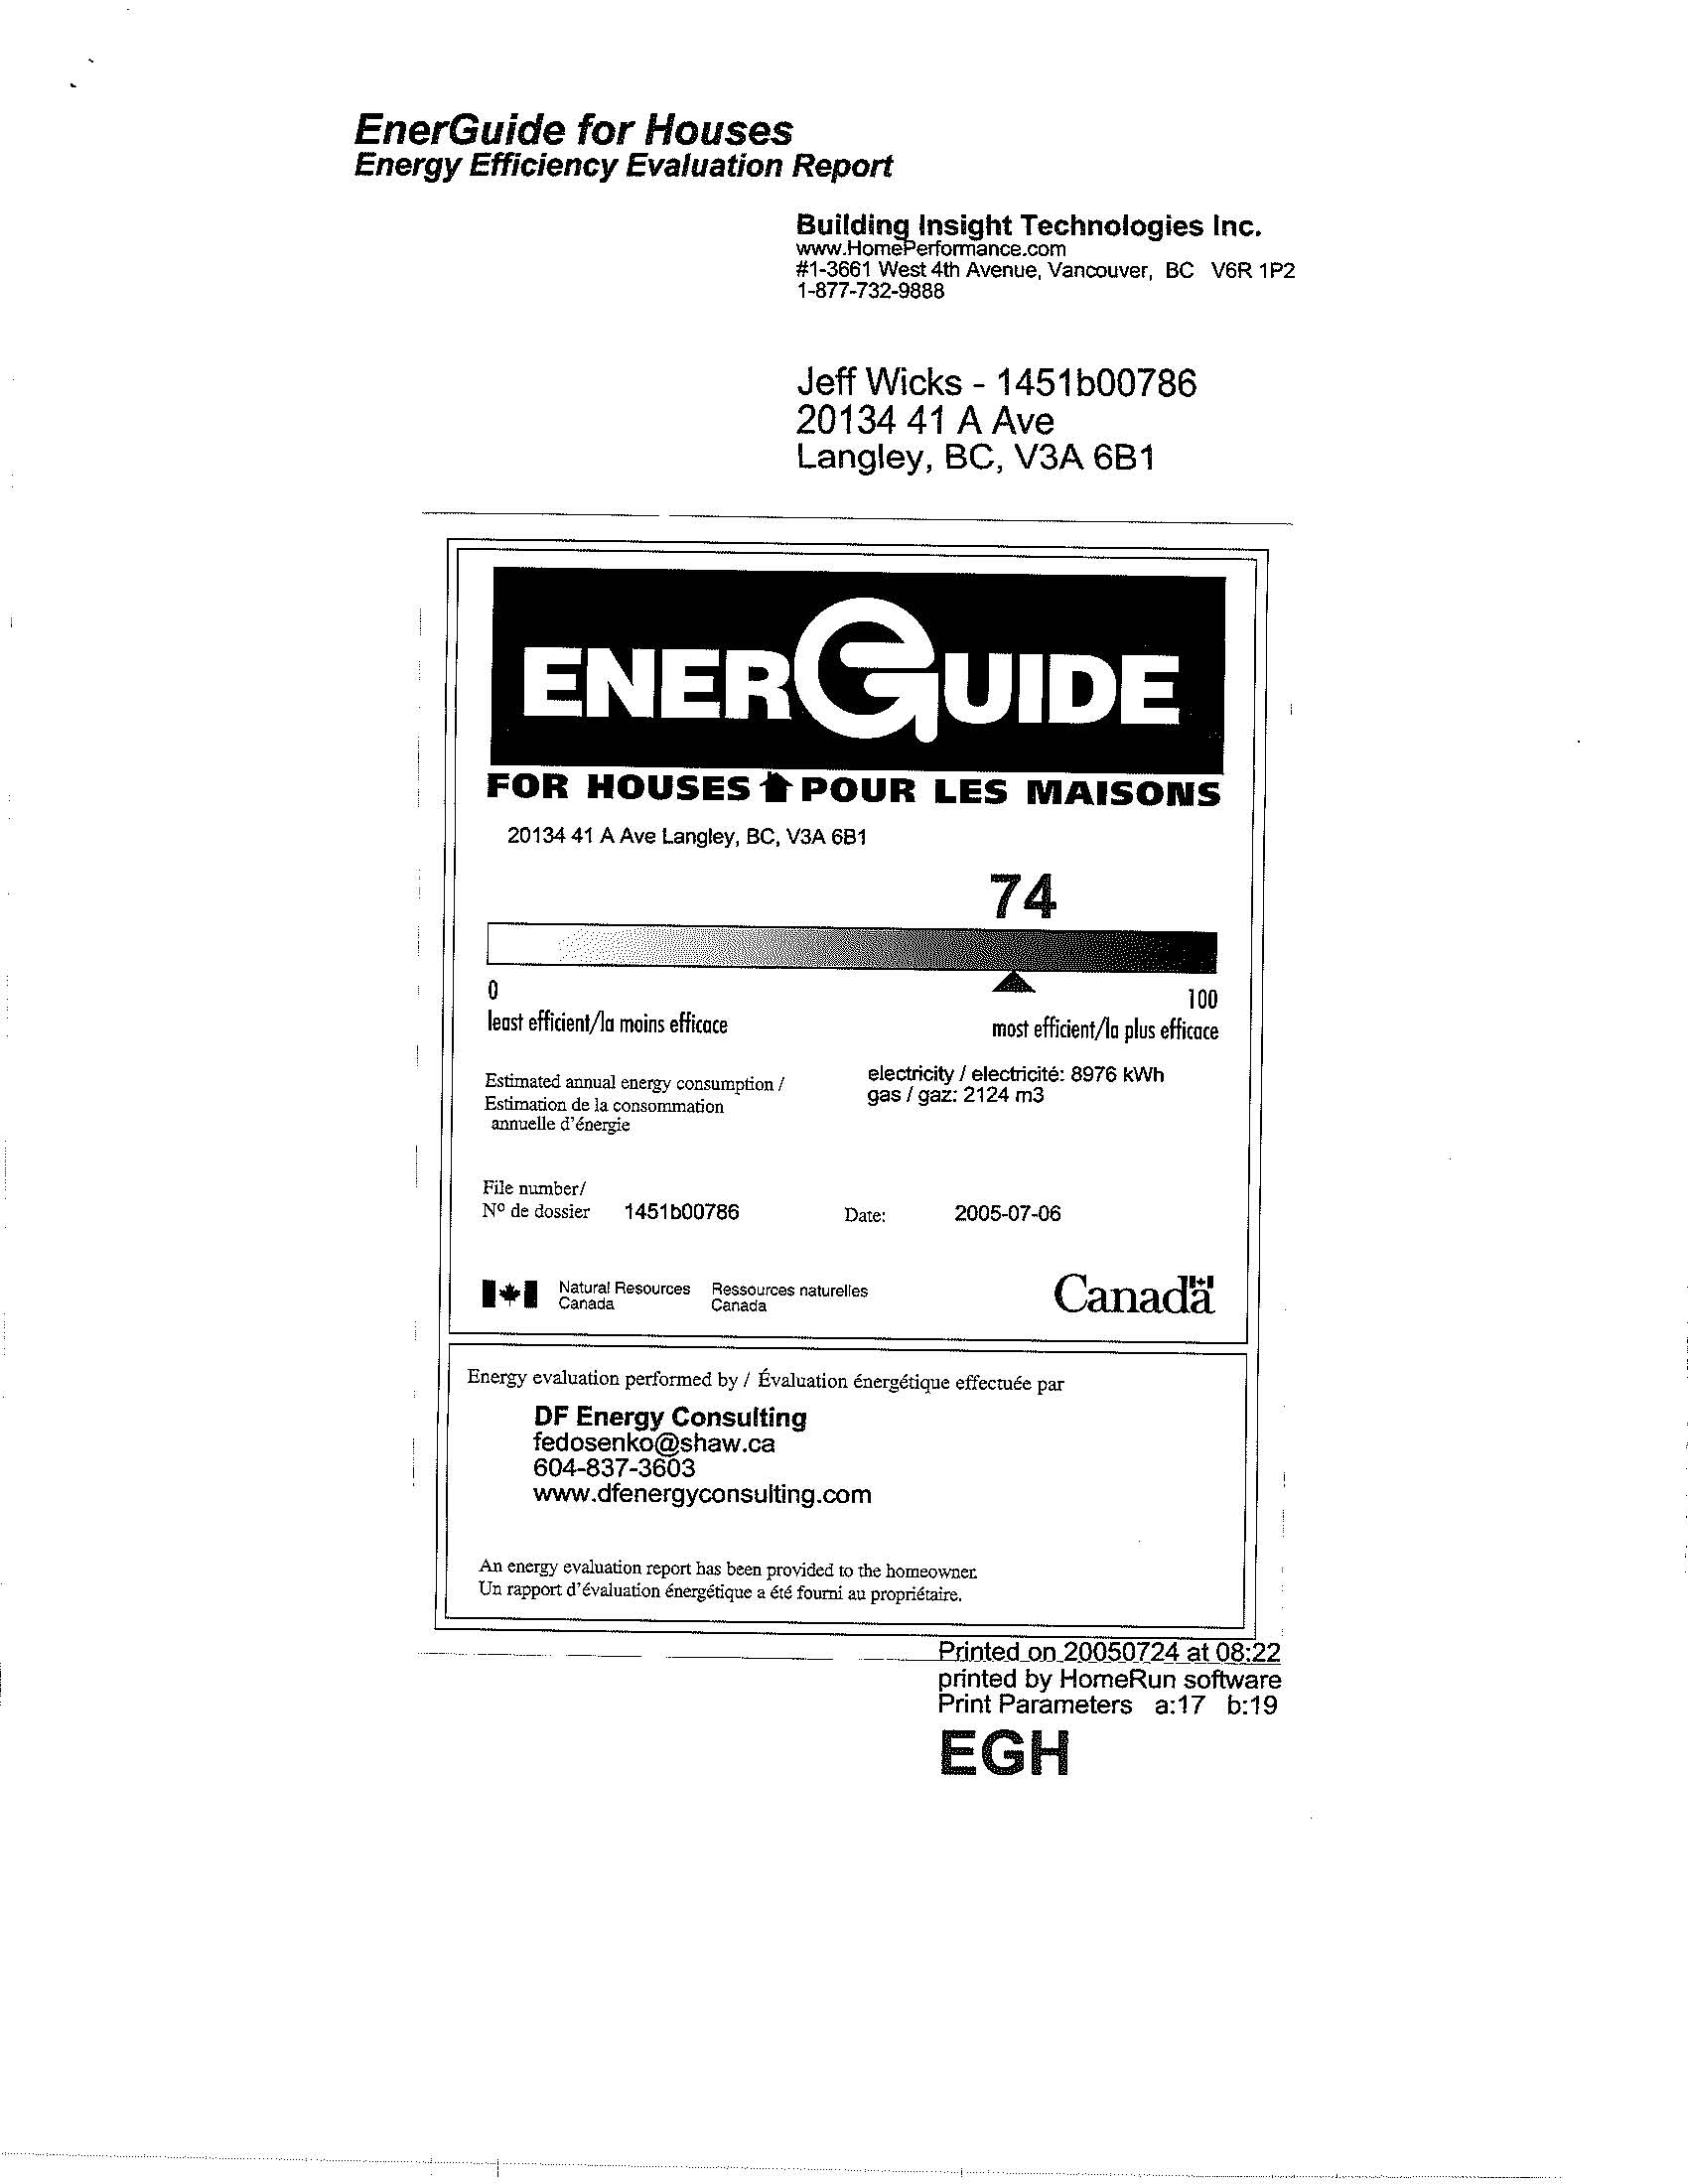 Energuide for Property